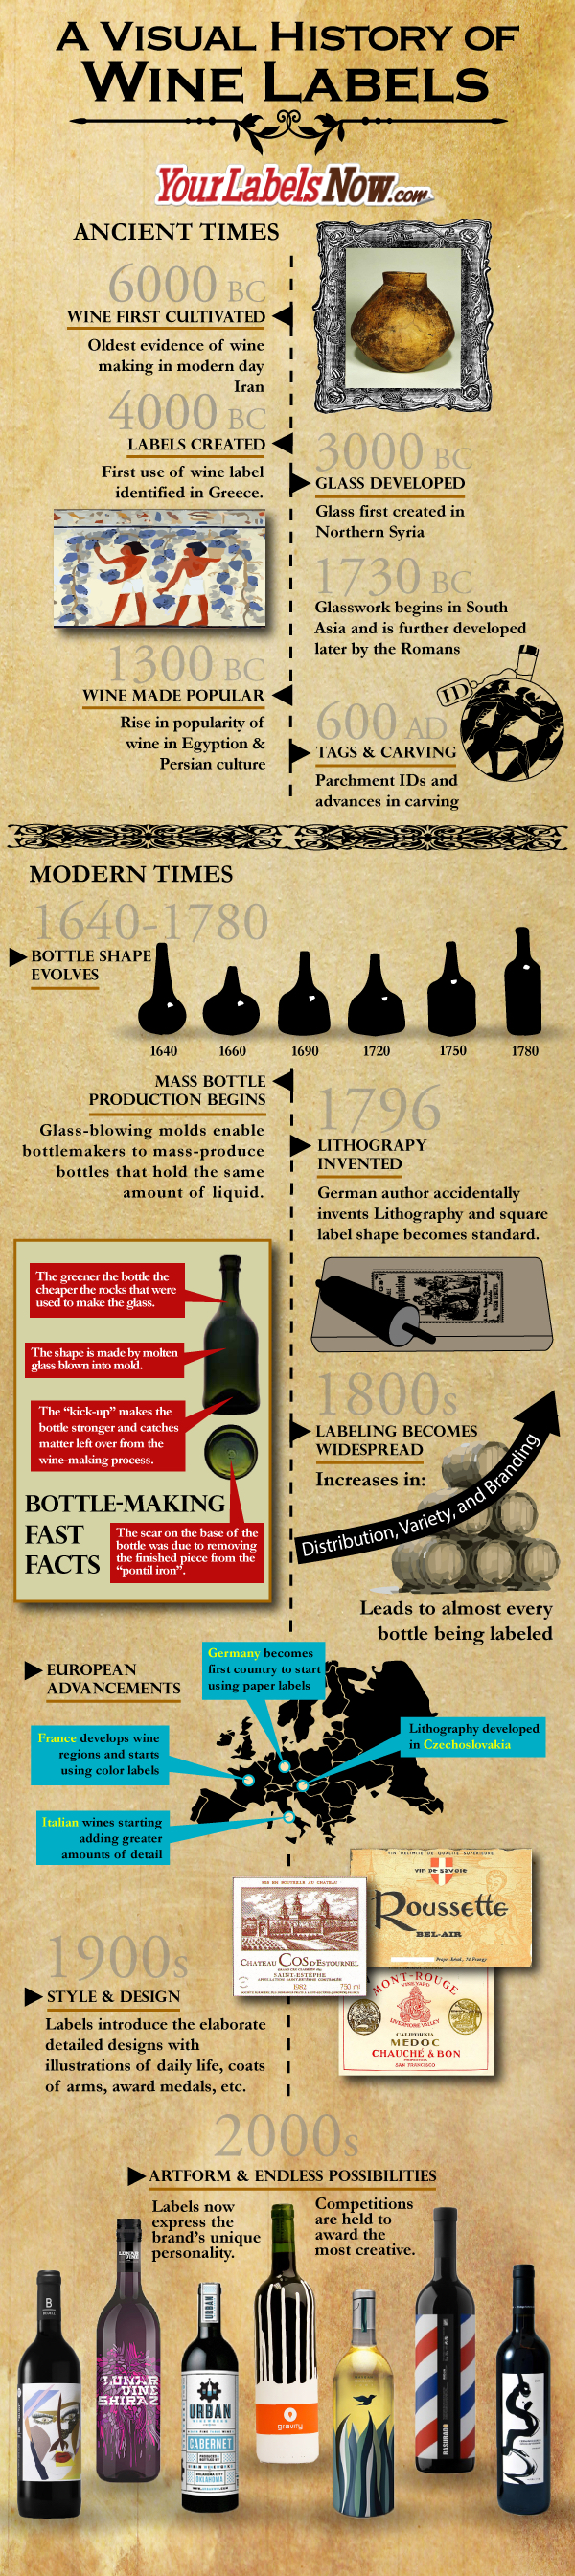 Afbeelding van http://infographicplace.com/wp-content/uploads/2015/01/winelabelinfographic-v2.png.